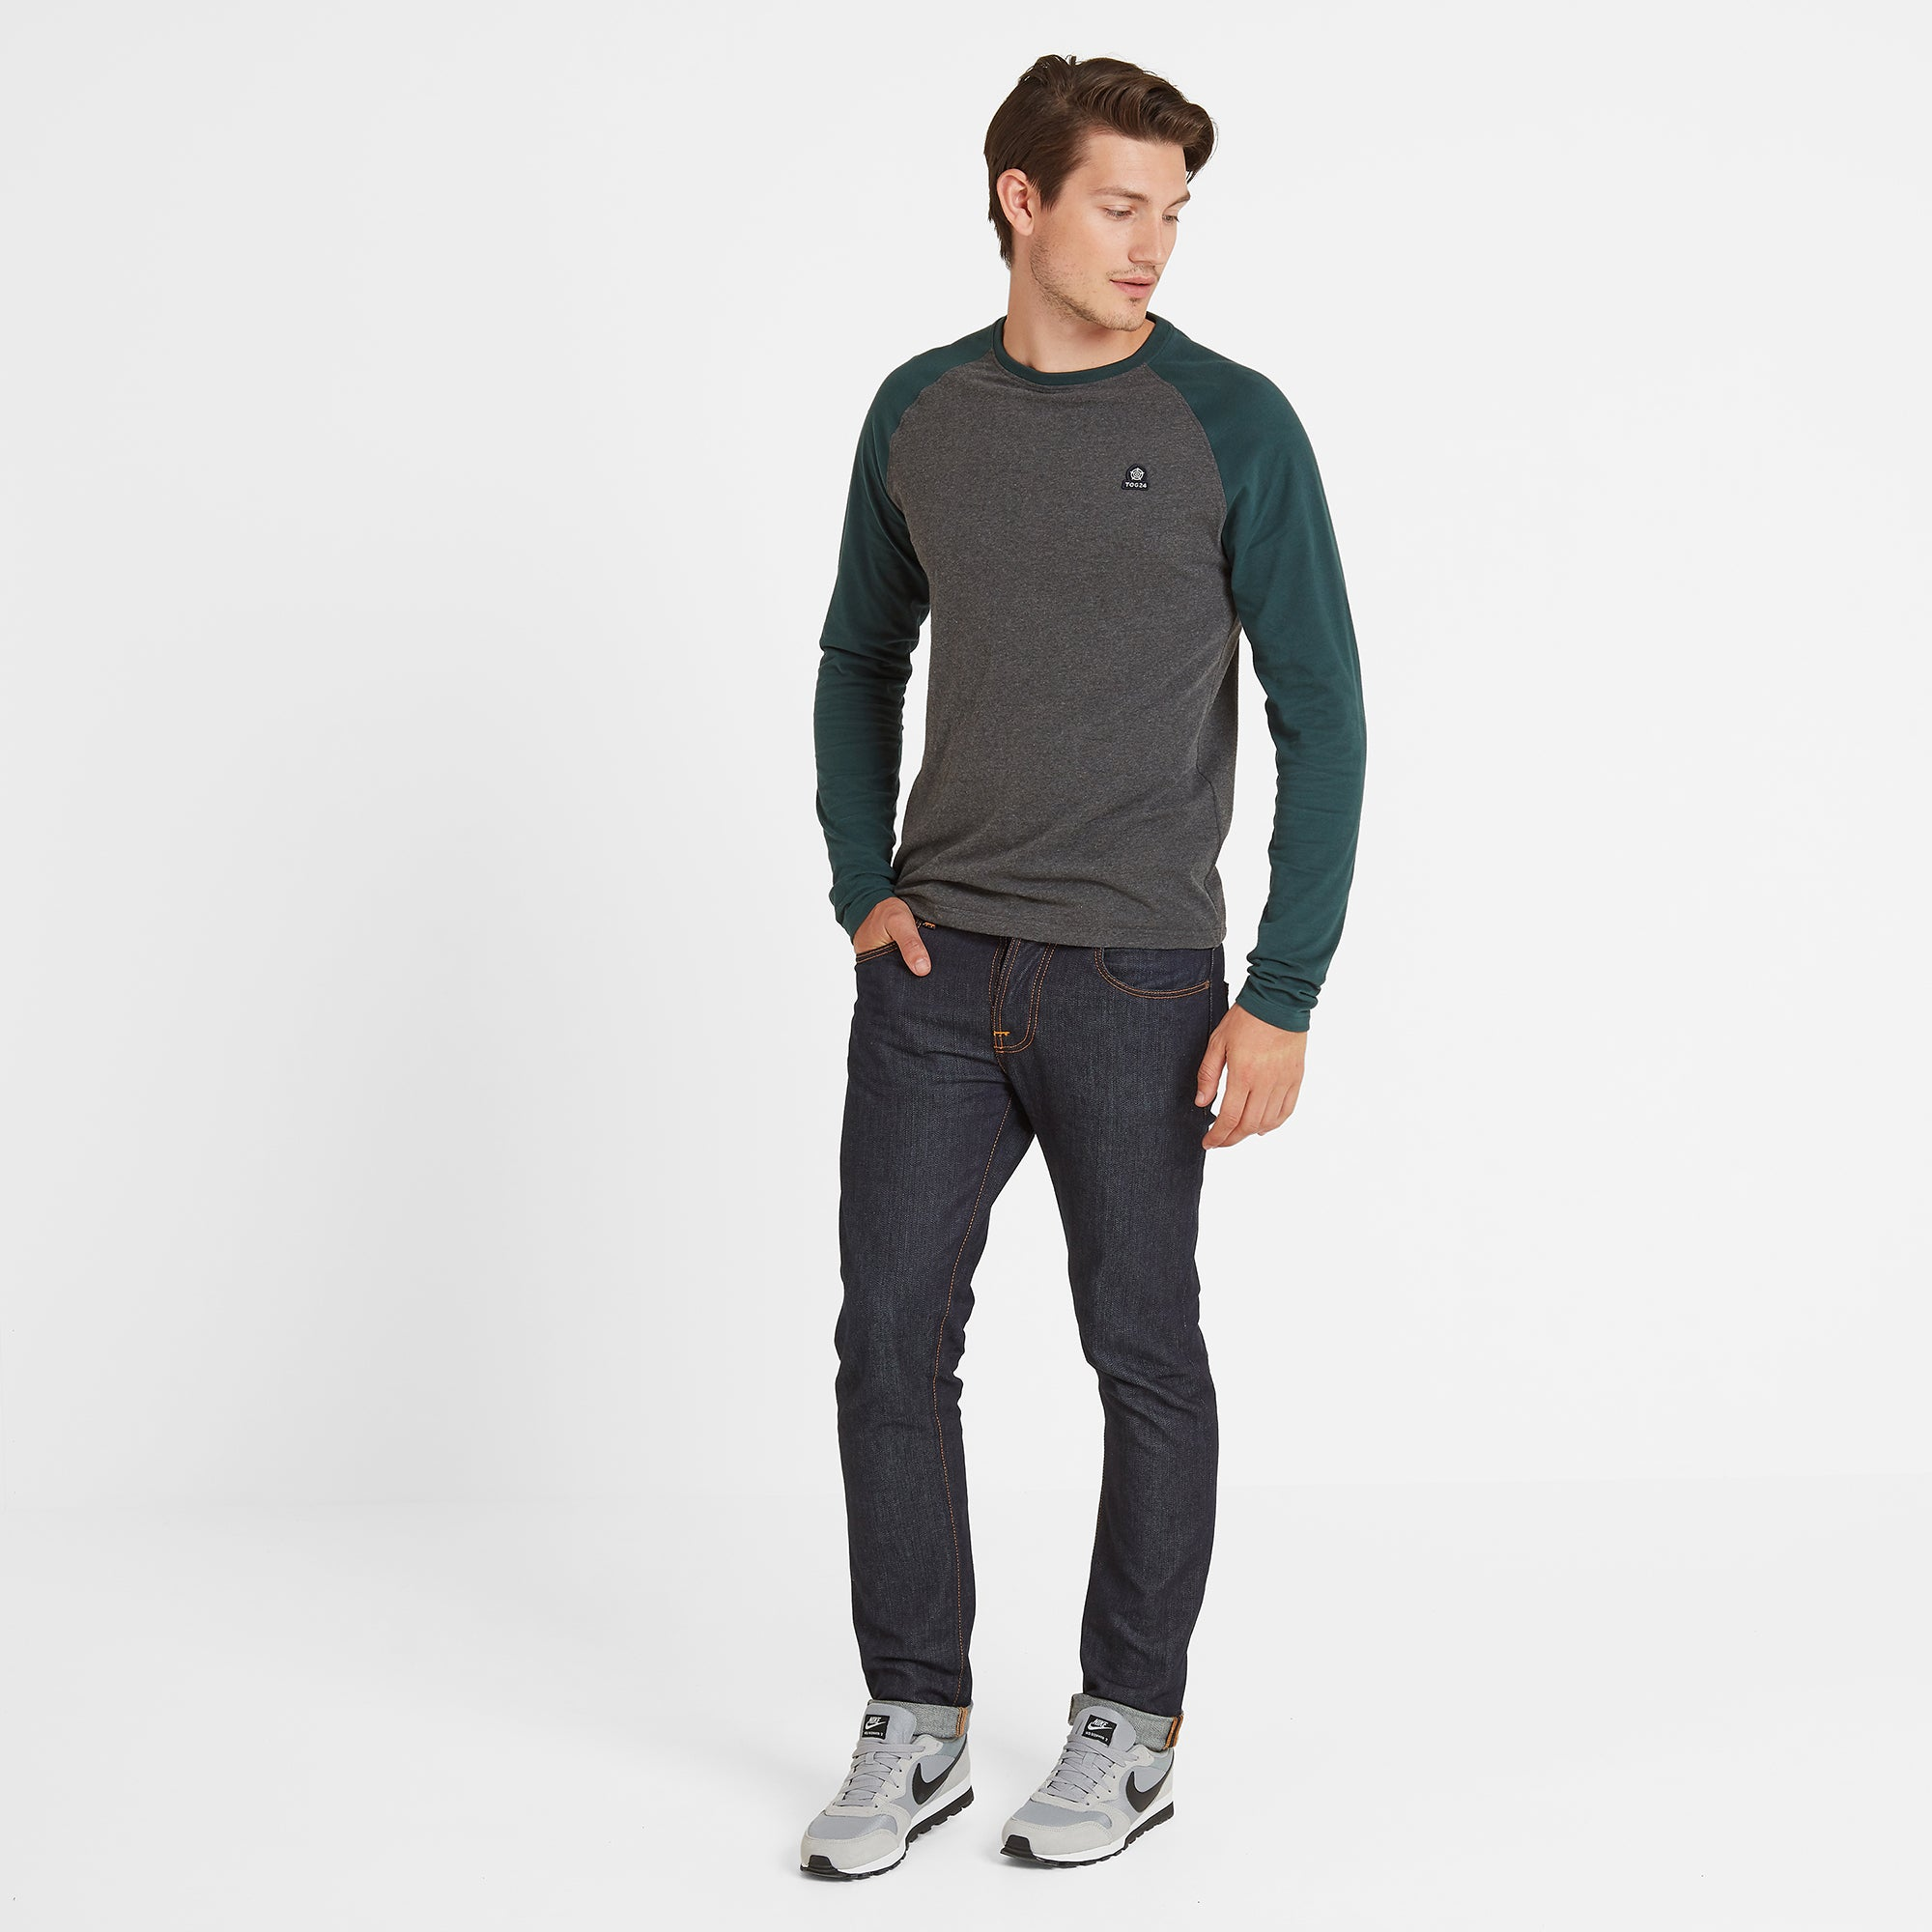 Buckden Mens Long Sleeve Raglan T-Shirt - Grey Marl/Dark Teal